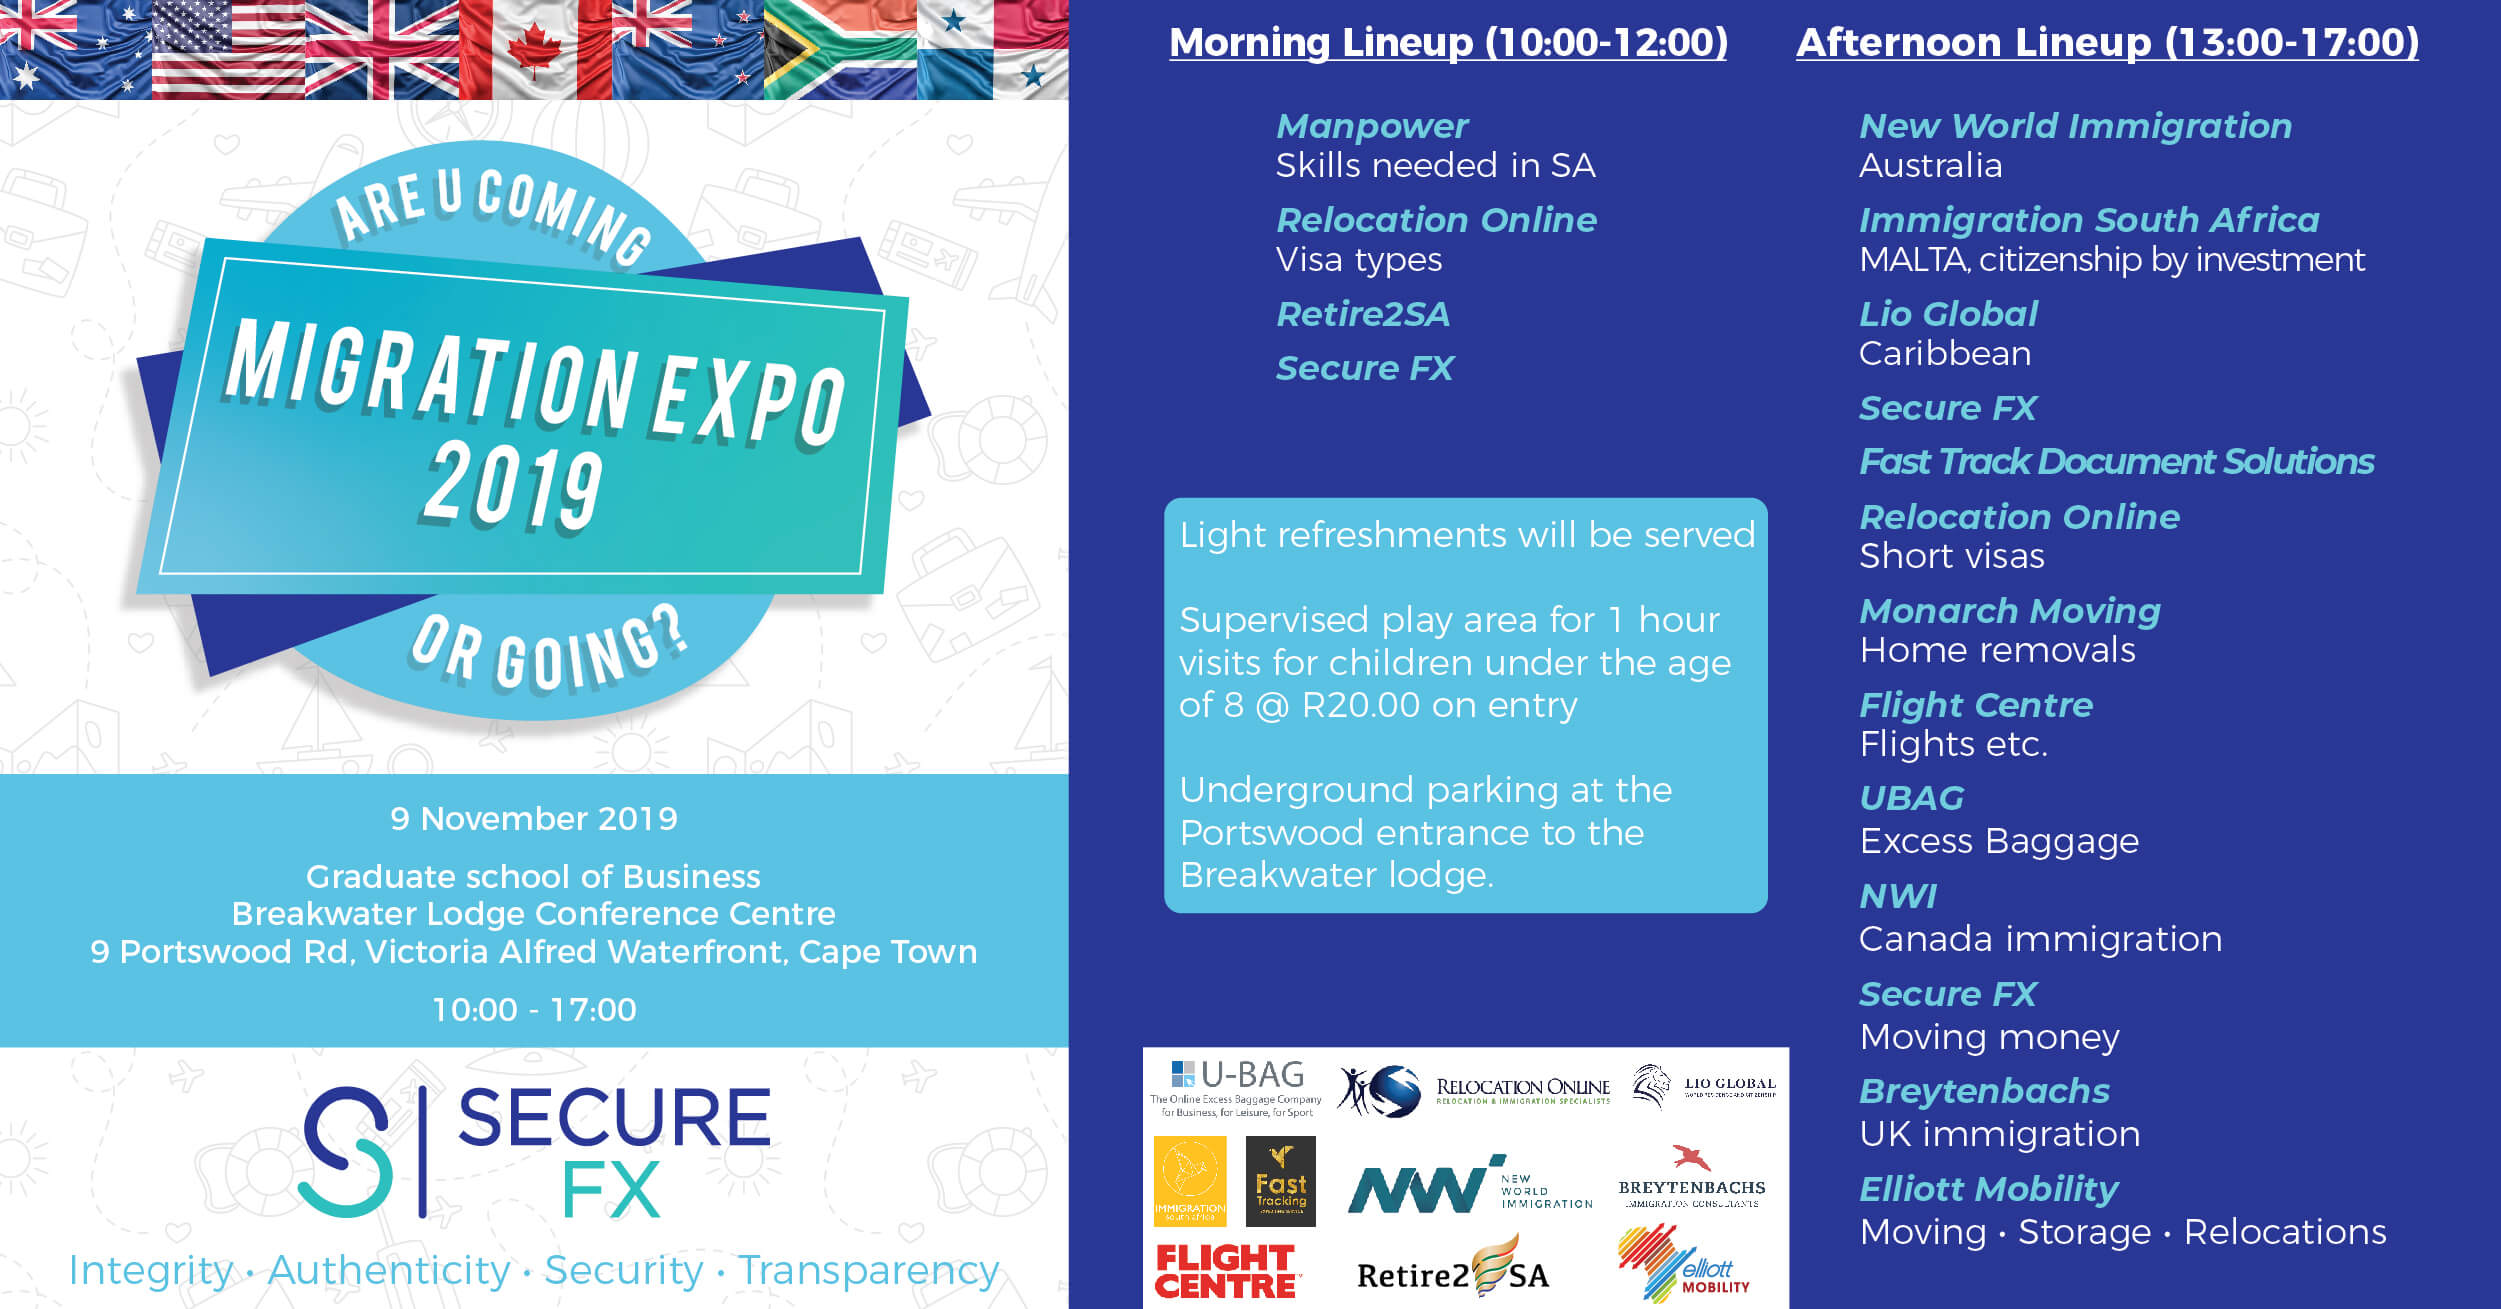 The MIGRATION EXPO